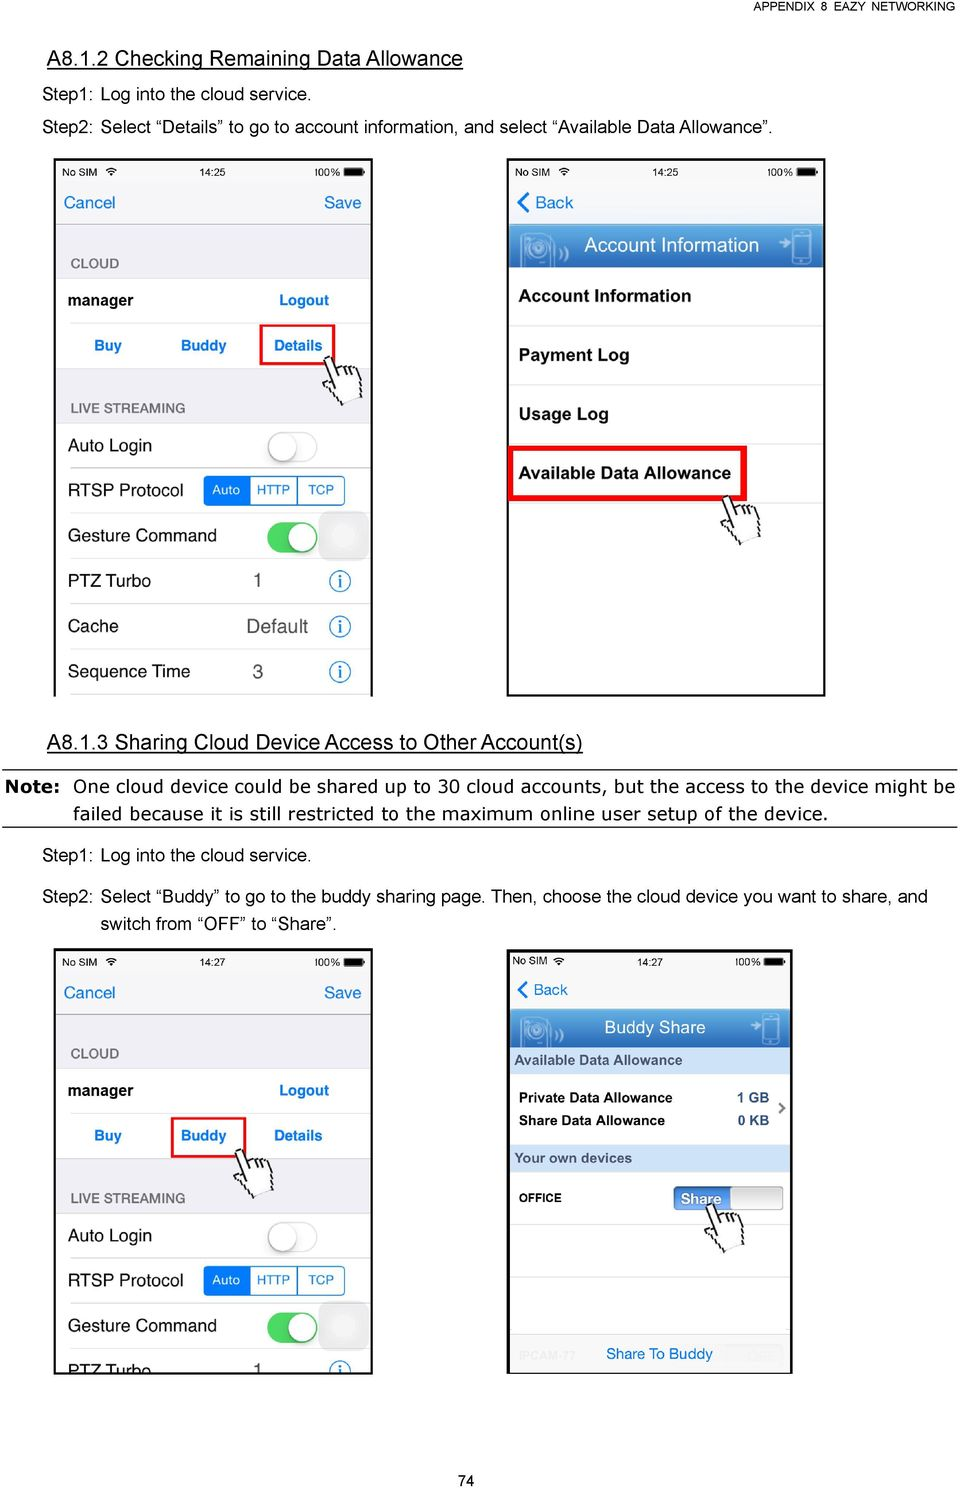 3 Sharing Cloud Device Access to Other Account(s) Note: One cloud device could be shared up to 30 cloud accounts, but the access to the device